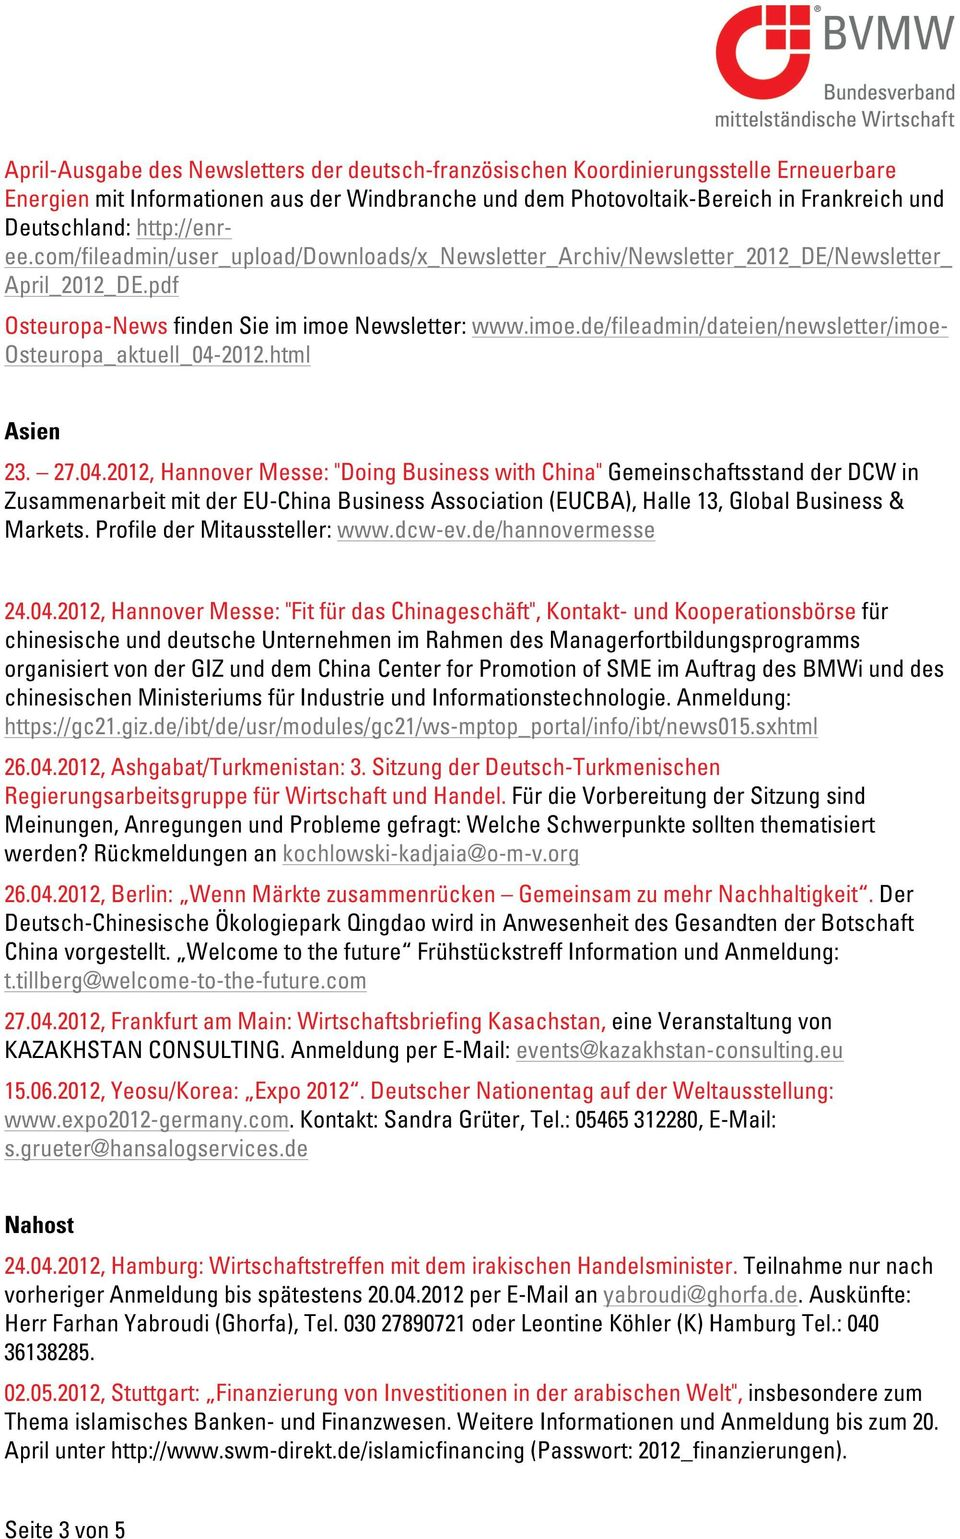 Newsletter: www.imoe.de/fileadmin/dateien/newsletter/imoe- Osteuropa_aktuell_04-